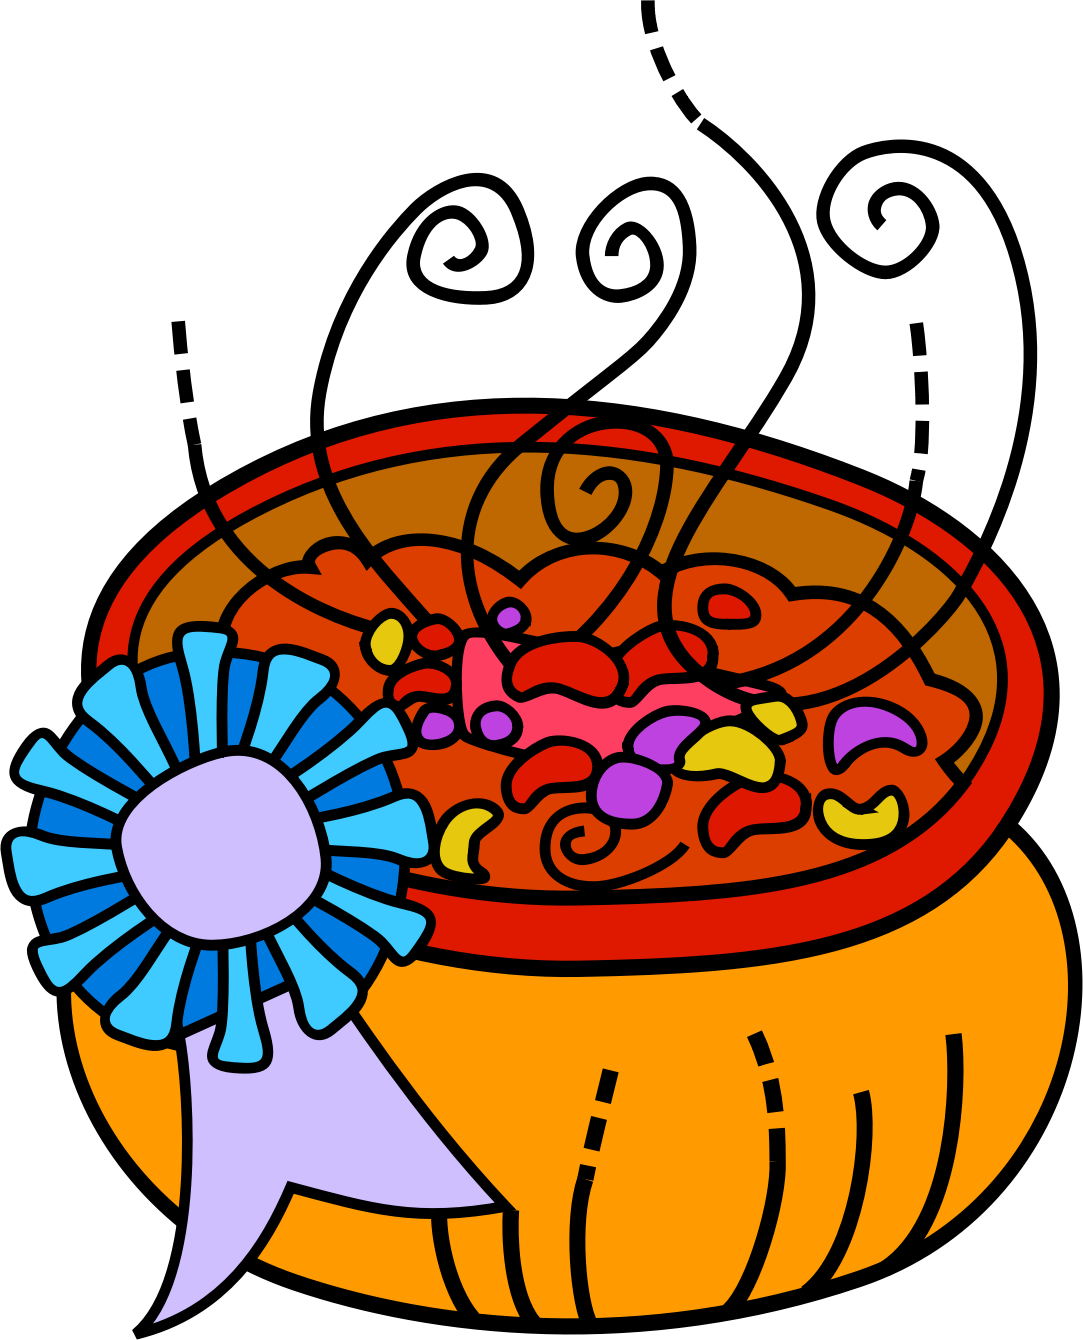 clip transparent library Chili free on dumielauxepices. Luncheon clipart